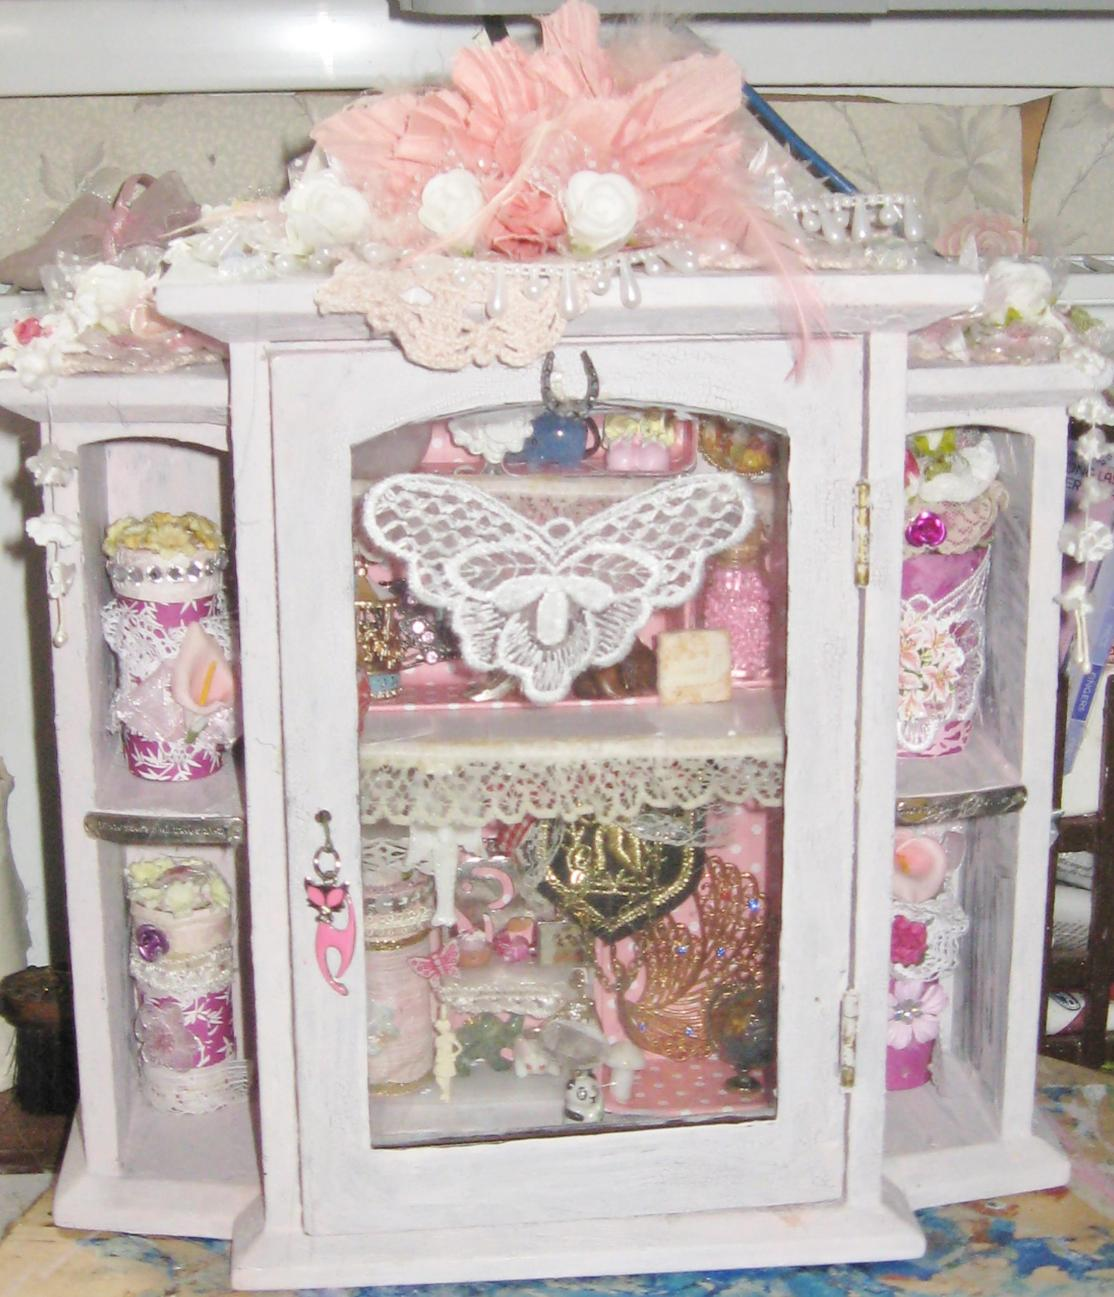 DIY Easy Shabby Chic Arts and Crafts Ideas 2